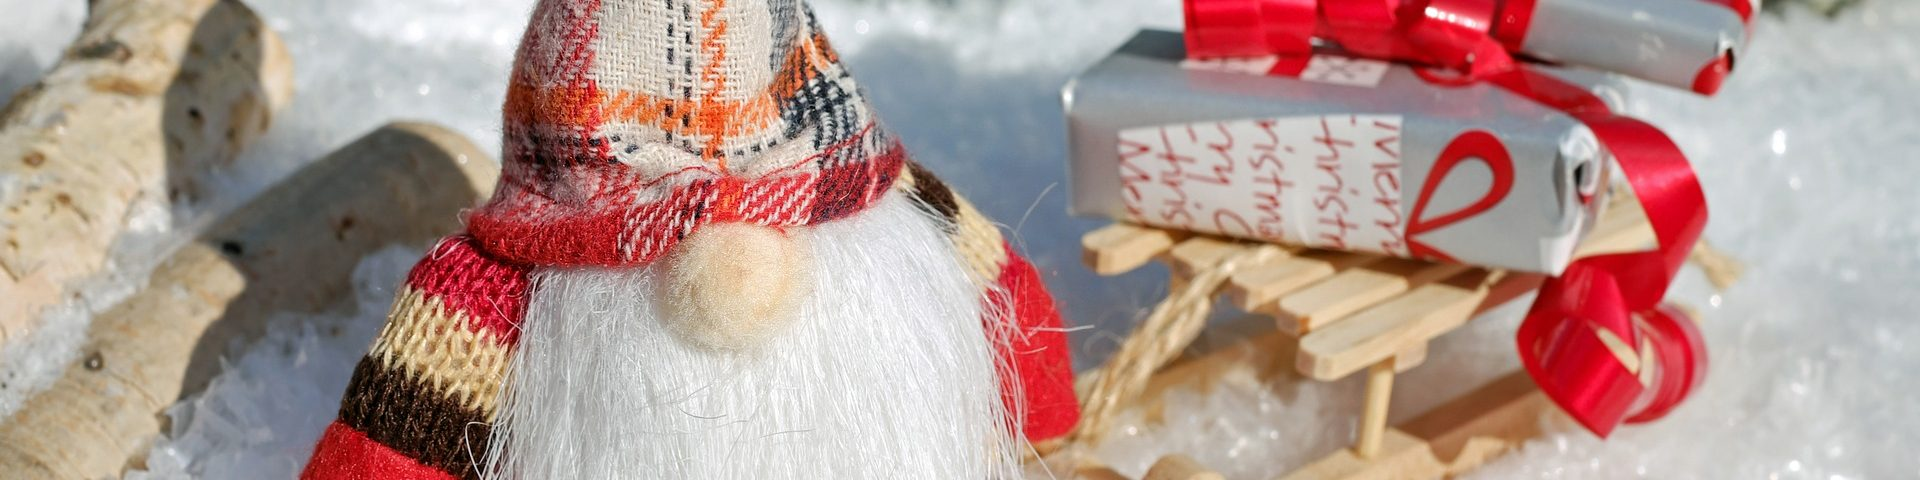 46 | Christmas Traditions Around The World